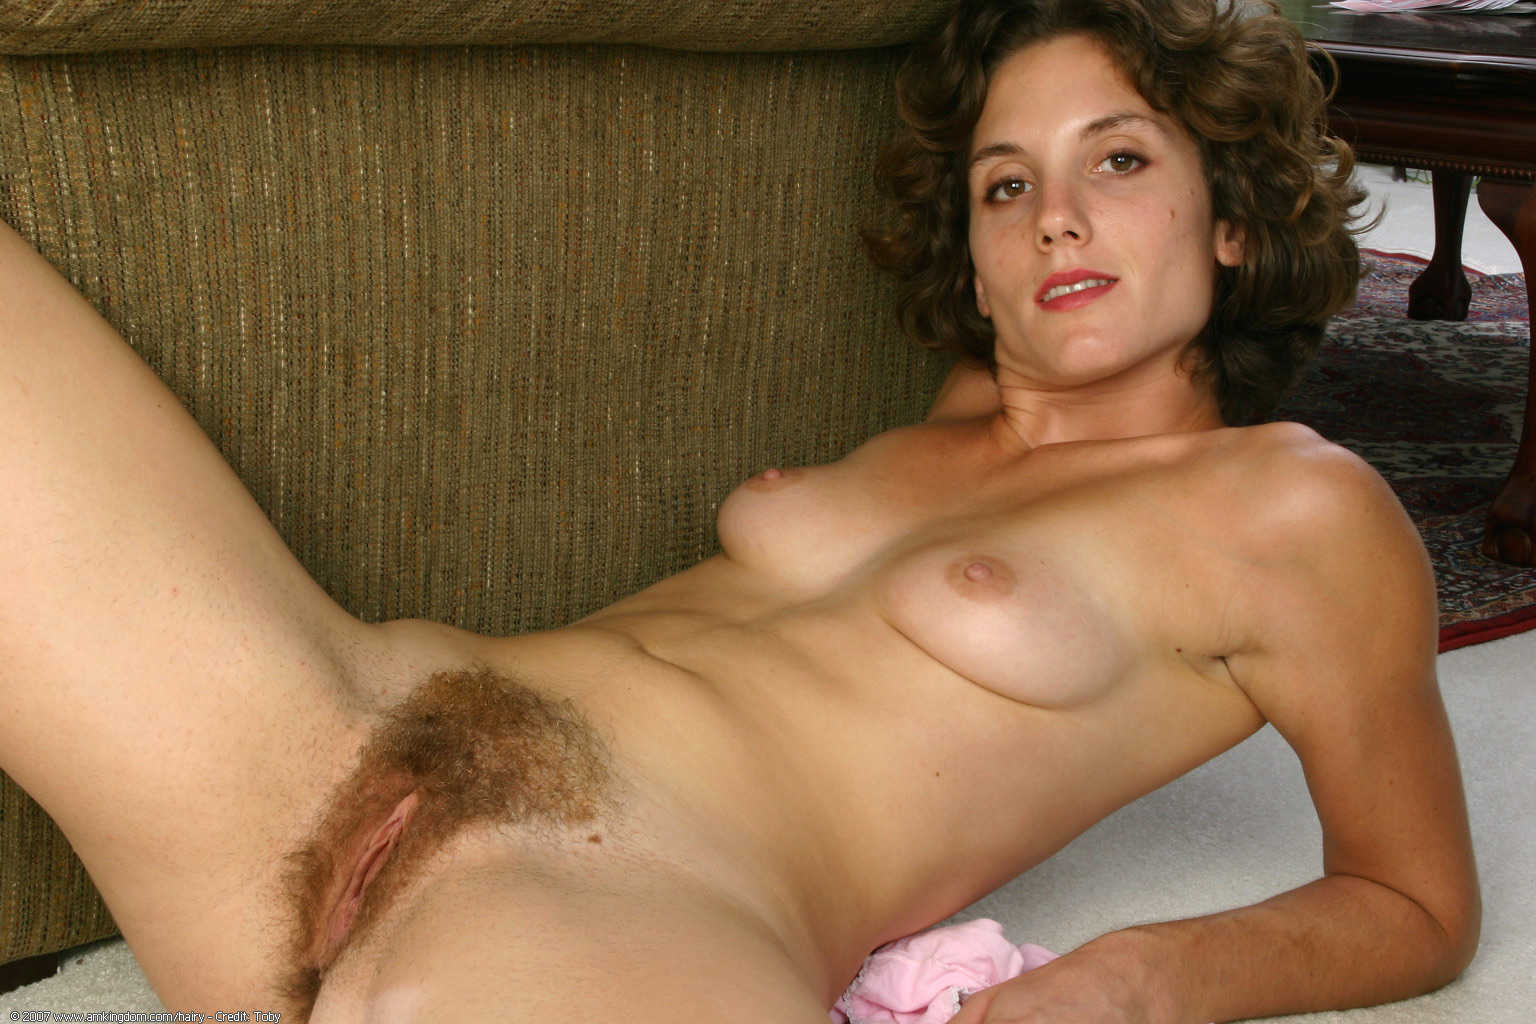 Remarkable, very hairy blonde wife naked idea